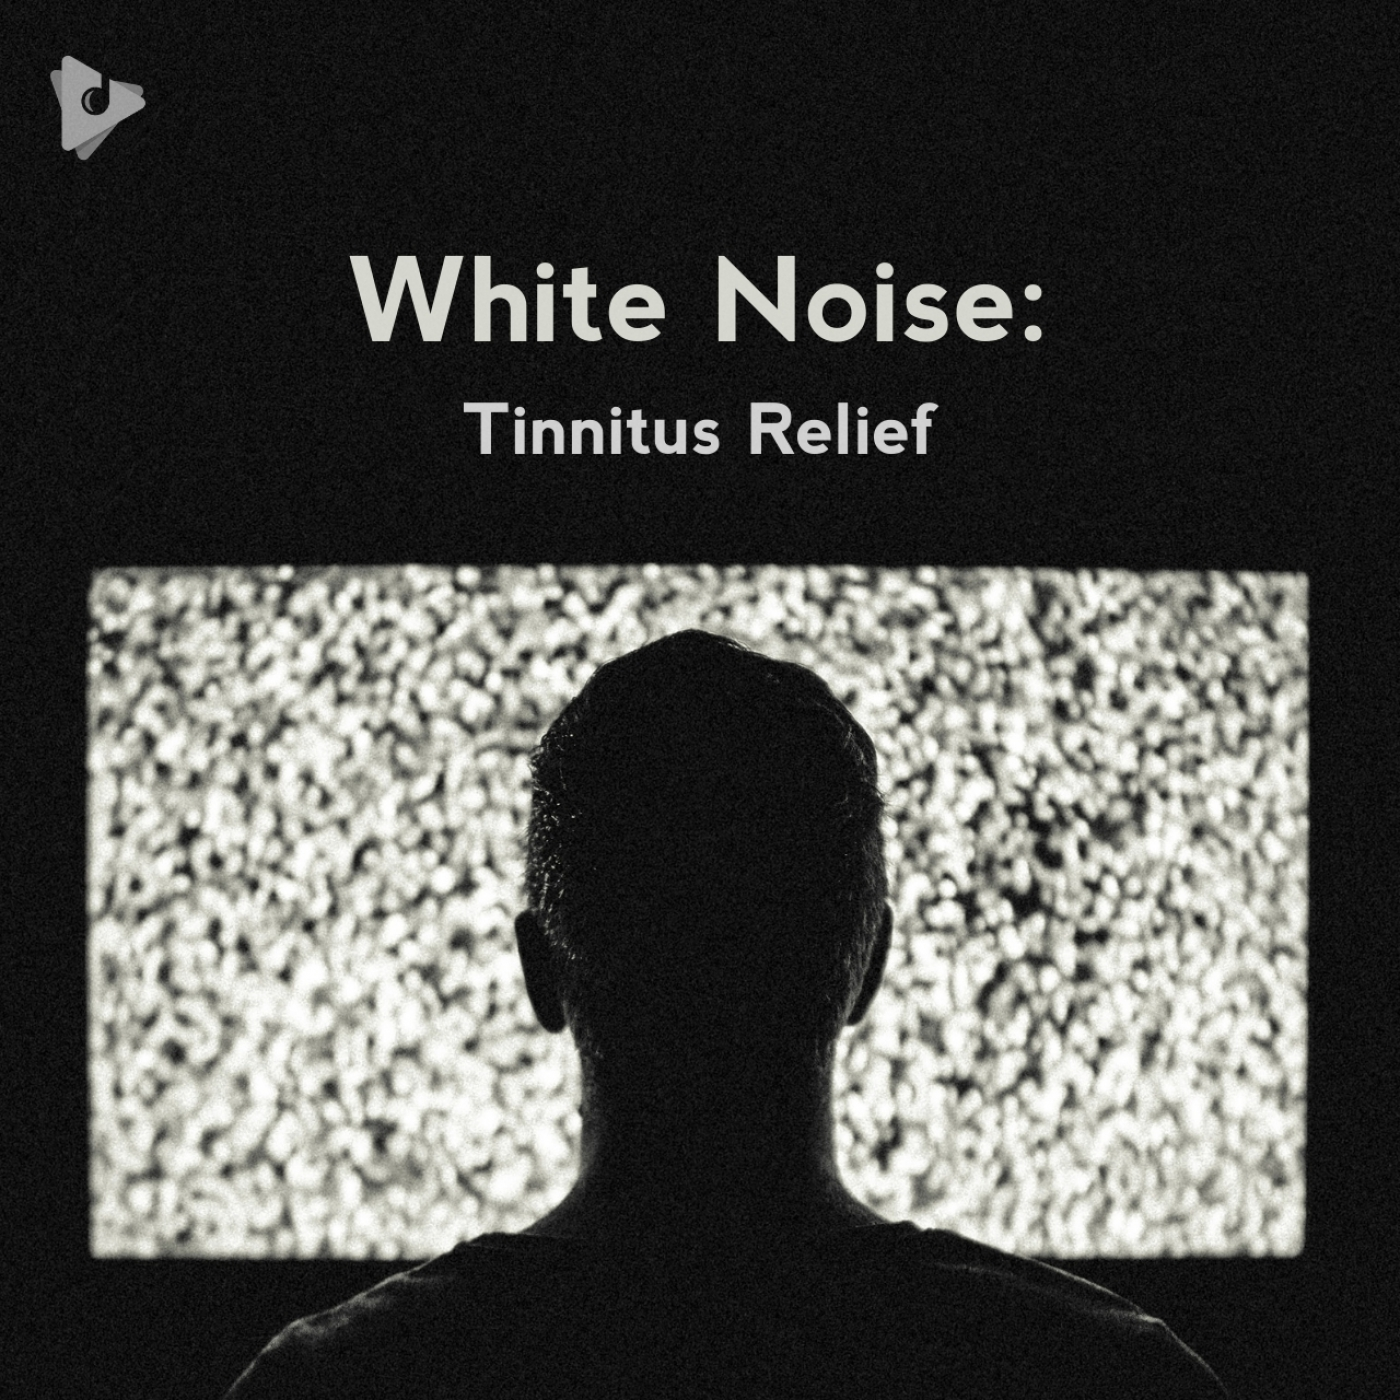 White Noise: Tinnitus Relief